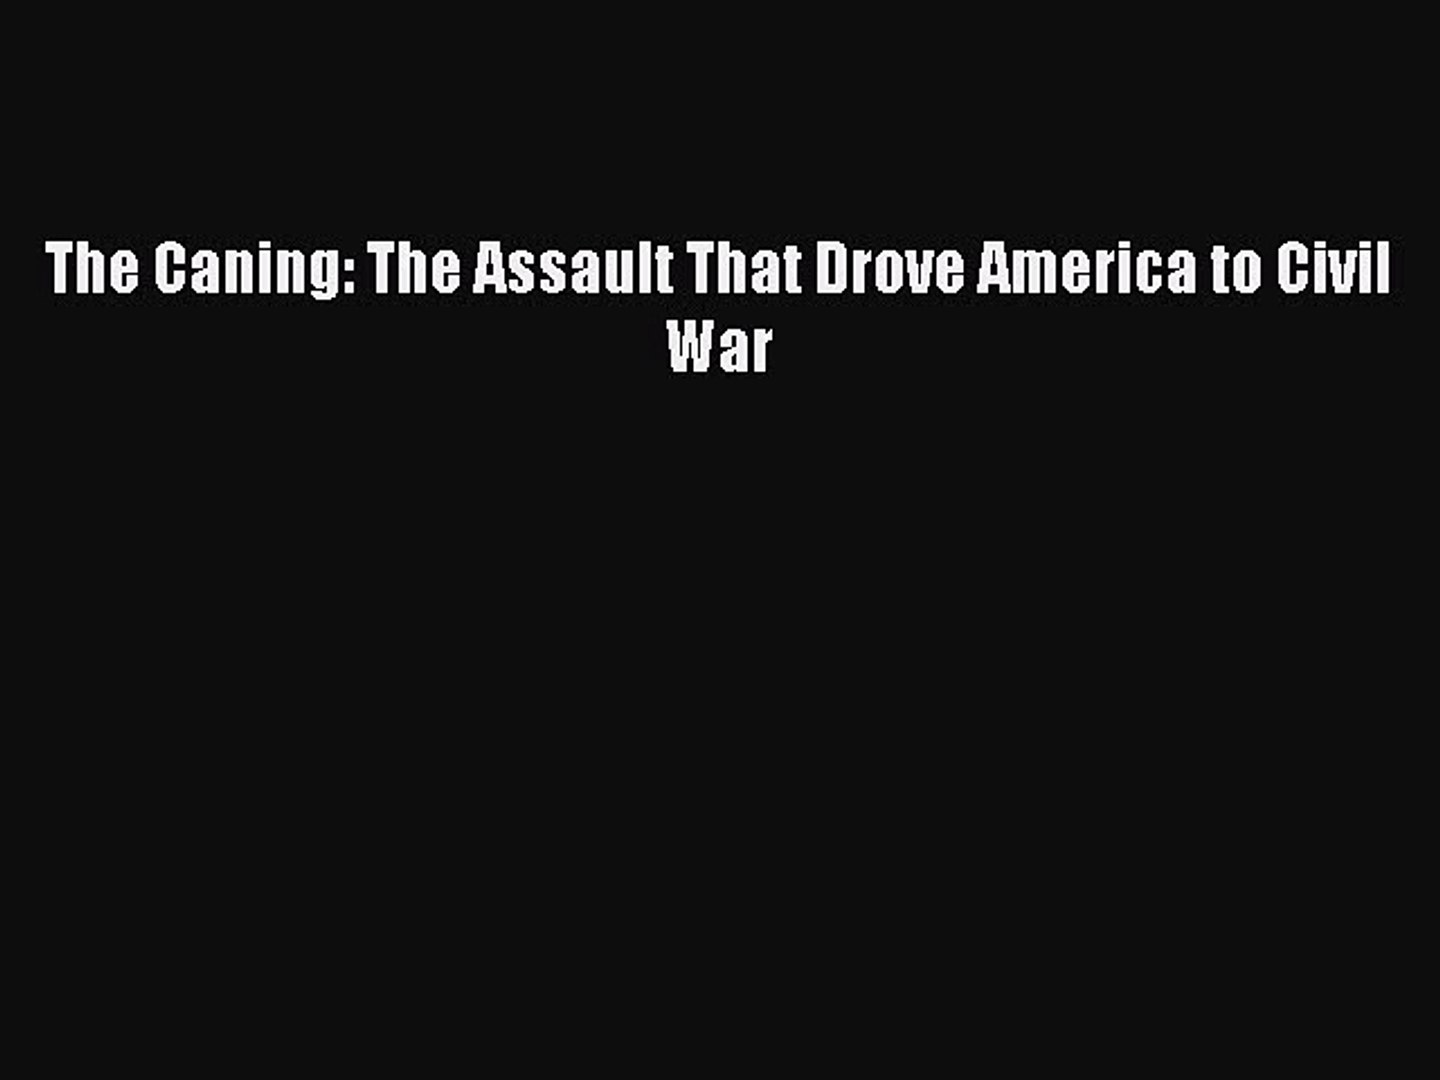 Download The Caning: The Assault That Drove America to Civil War Free Books